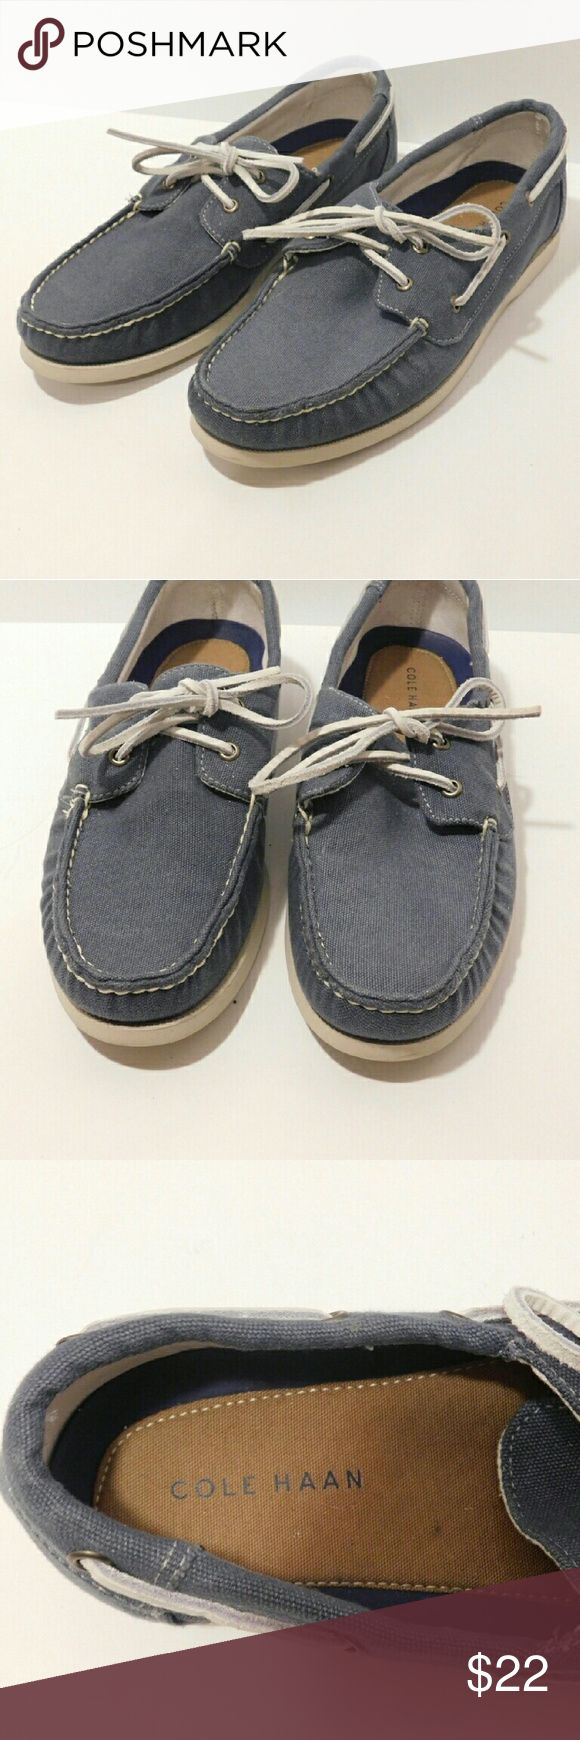 Cole Haan Men's Blue Boat Shoes Size 9 M Cole Haan Men's Casual Boat Shoes Size 9 M.  Excellent condition worn just a few times. These are a great pair of shoes and I'm selling these at a great price. I will ship within one business day. $15 firm. Cole Haan Shoes Boat Shoes